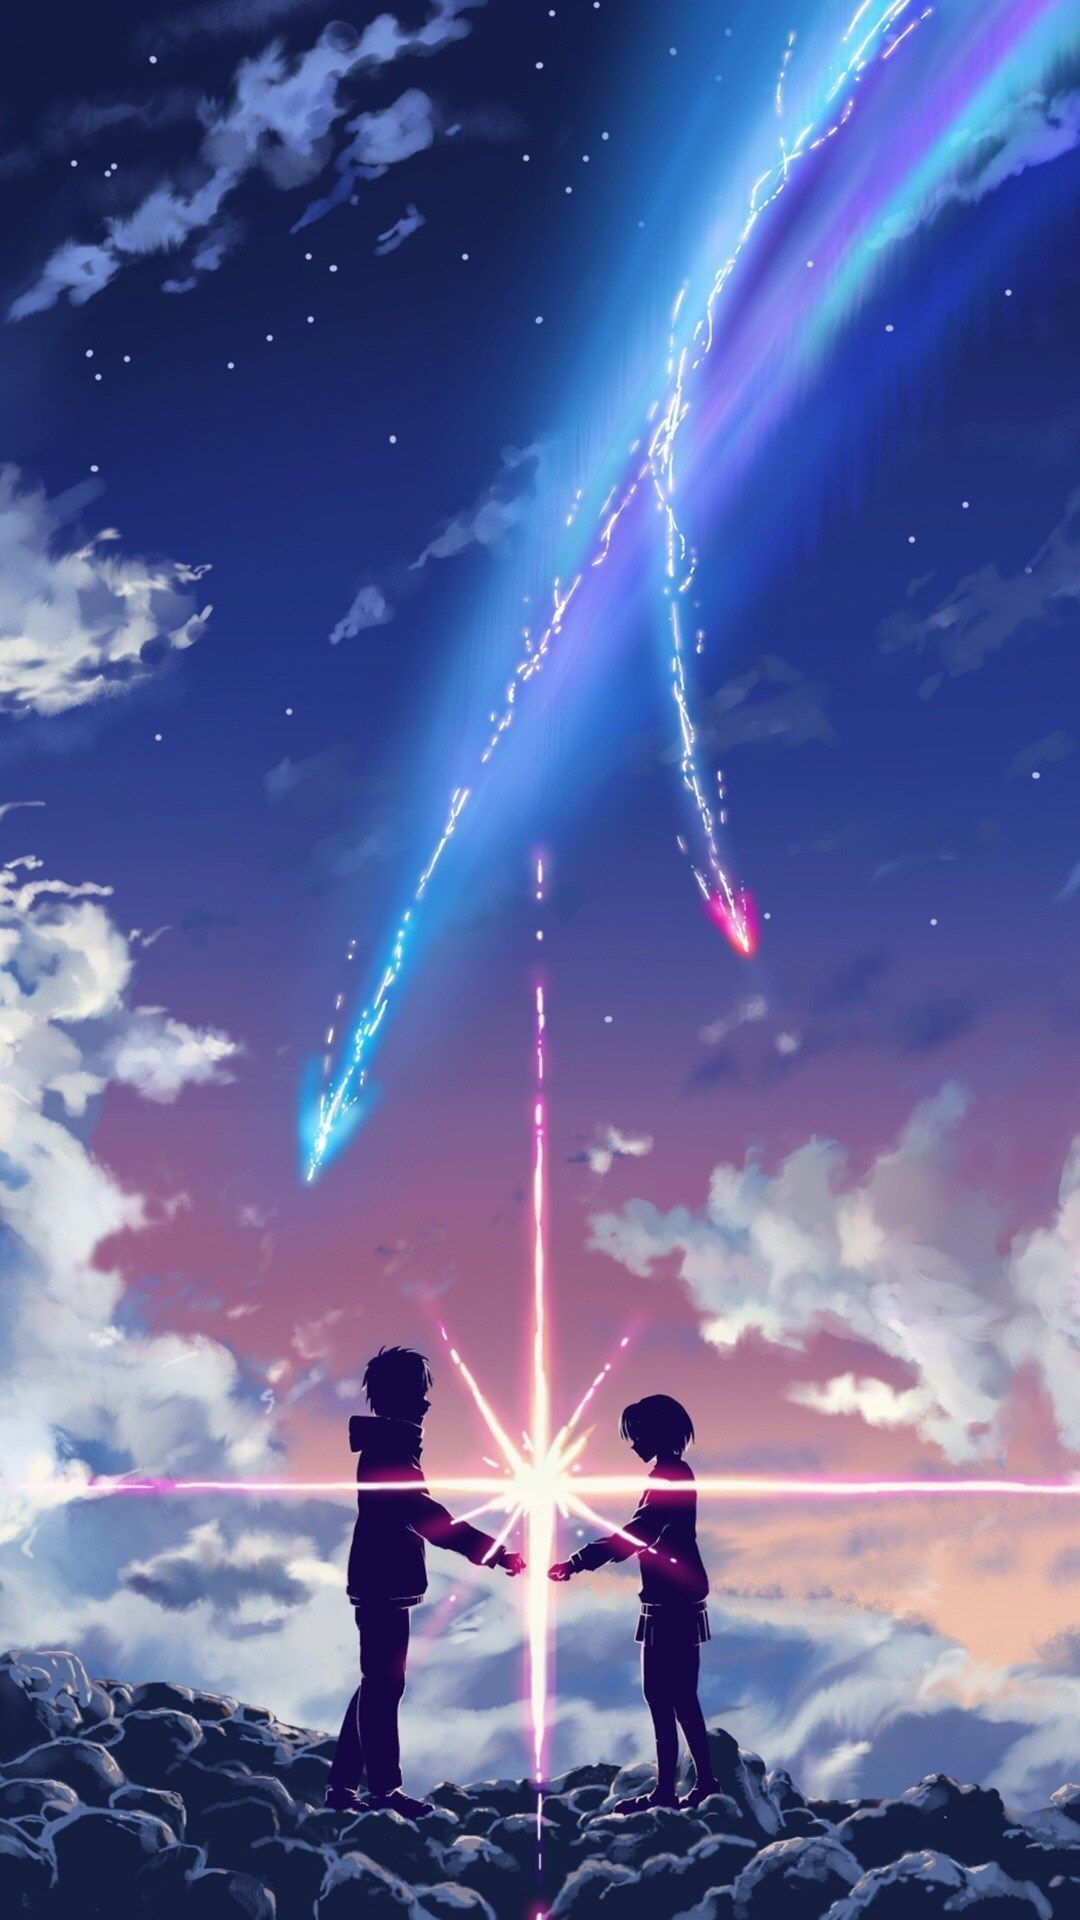 Aesthetic Anime Iphone Wallpapers Top Free Aesthetic Anime Iphone Backgrounds Wallpaperacc In 2020 Anime Backgrounds Wallpapers Anime Scenery Anime Wallpaper Phone